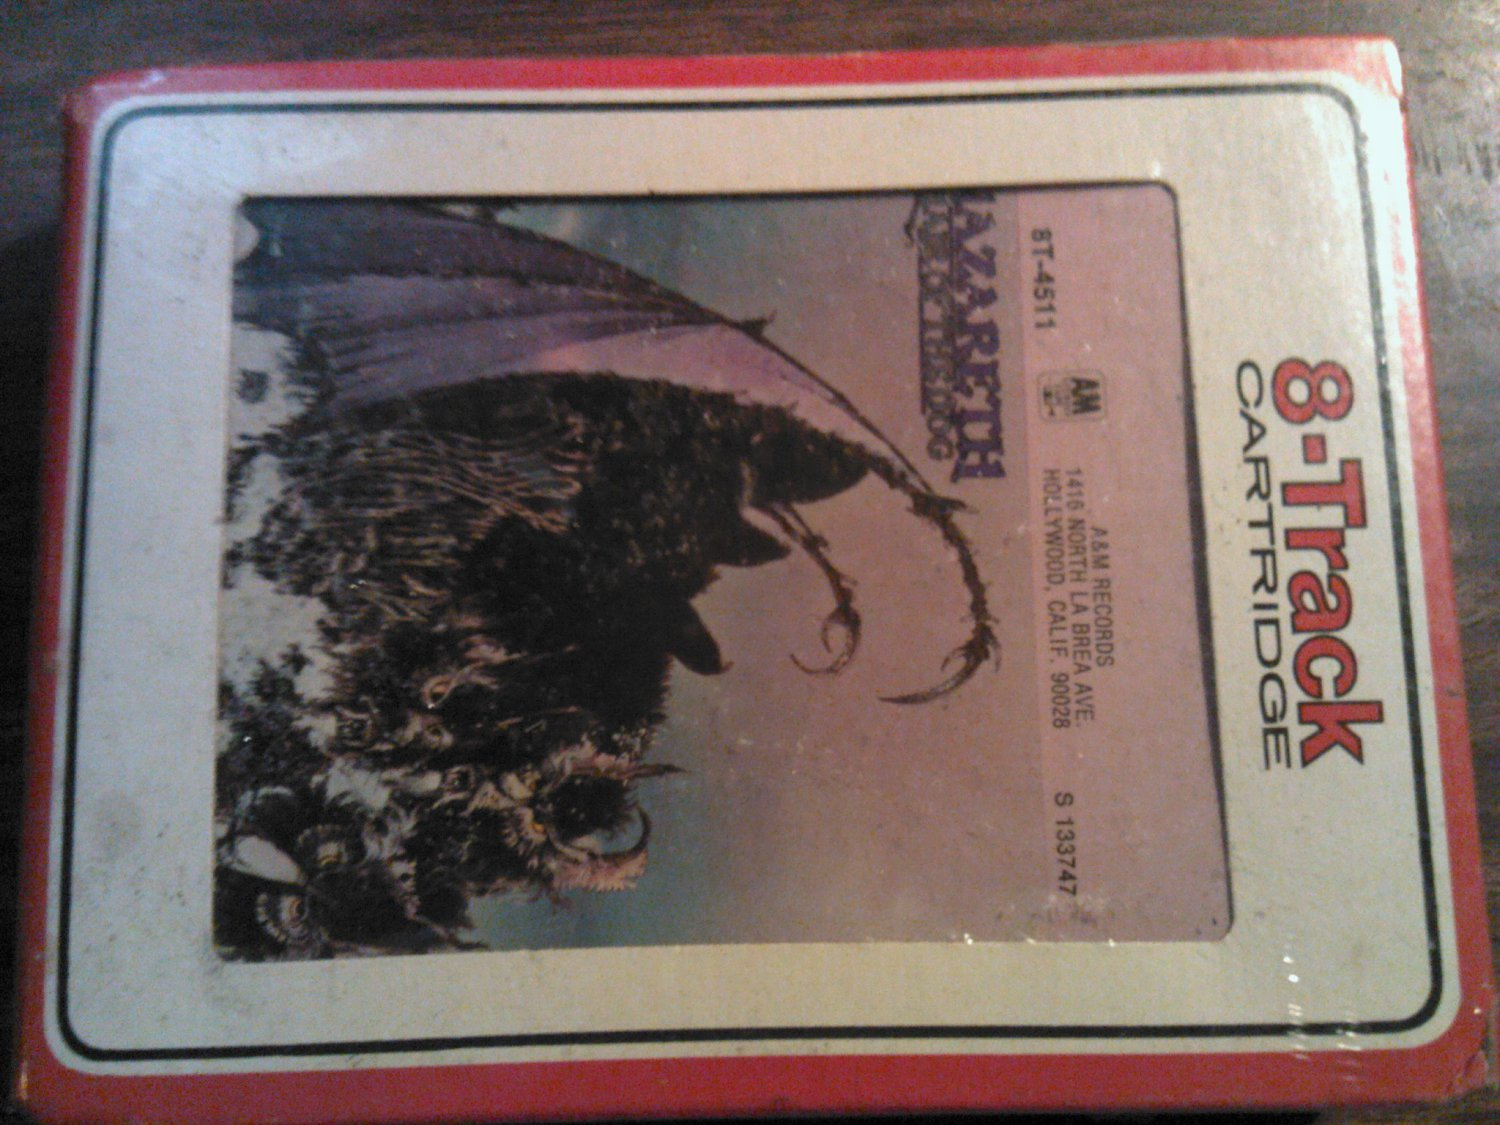 NAZARETH 8-TRACK TAPE Hair of the Dog vintage SEALED